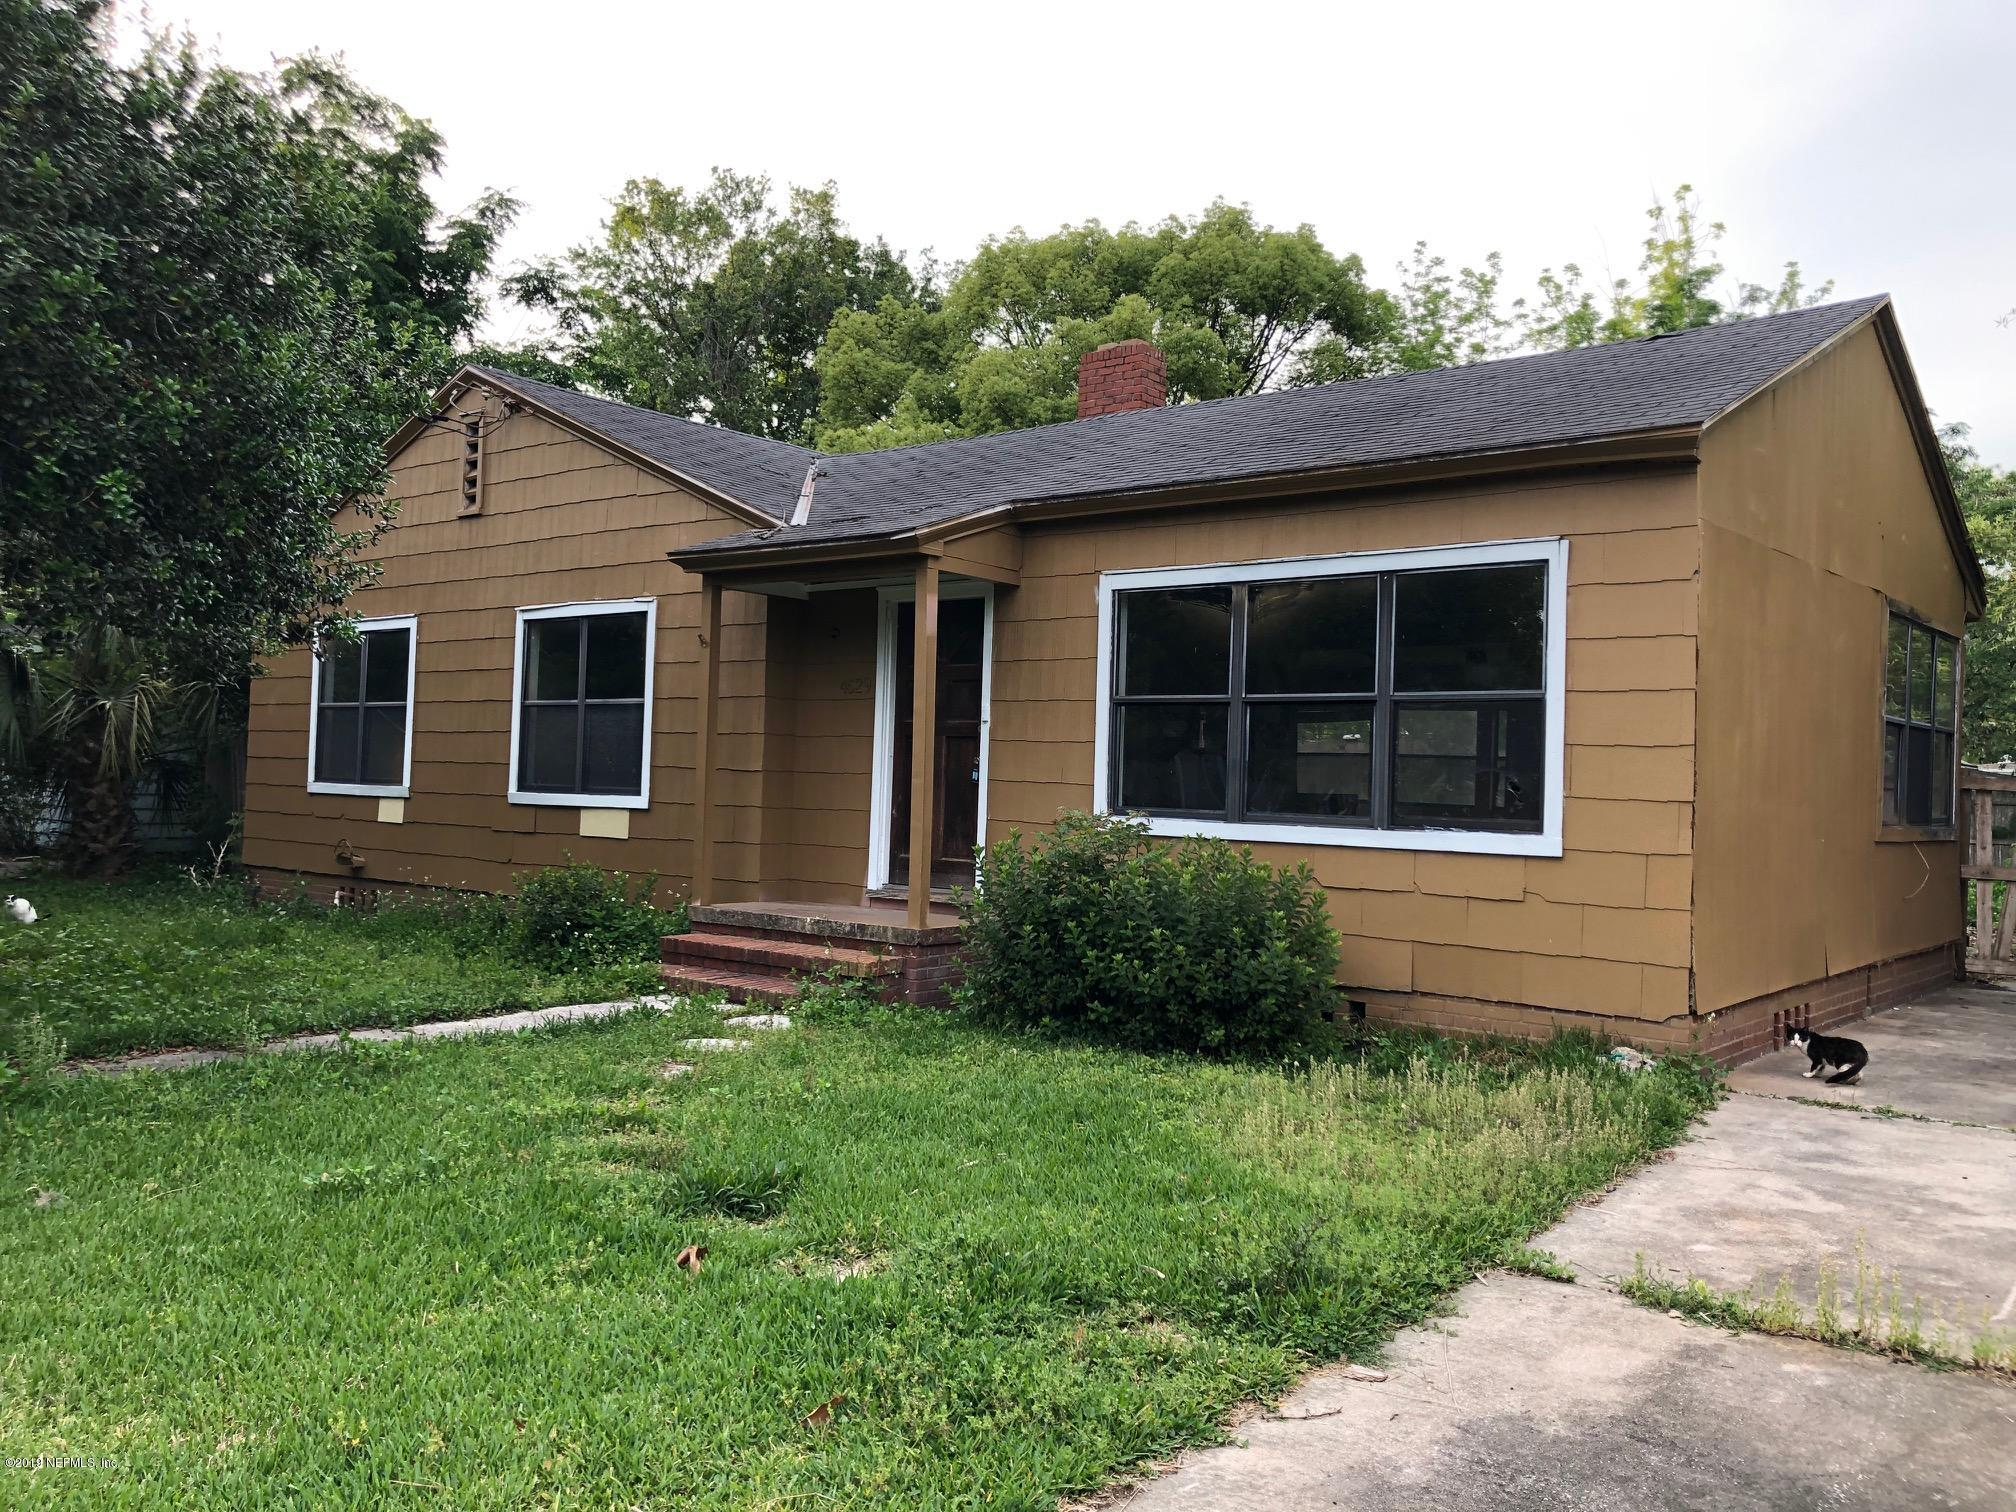 4529 BLOUNT, JACKSONVILLE, FLORIDA 32210, 3 Bedrooms Bedrooms, ,1 BathroomBathrooms,Residential - single family,For sale,BLOUNT,991447